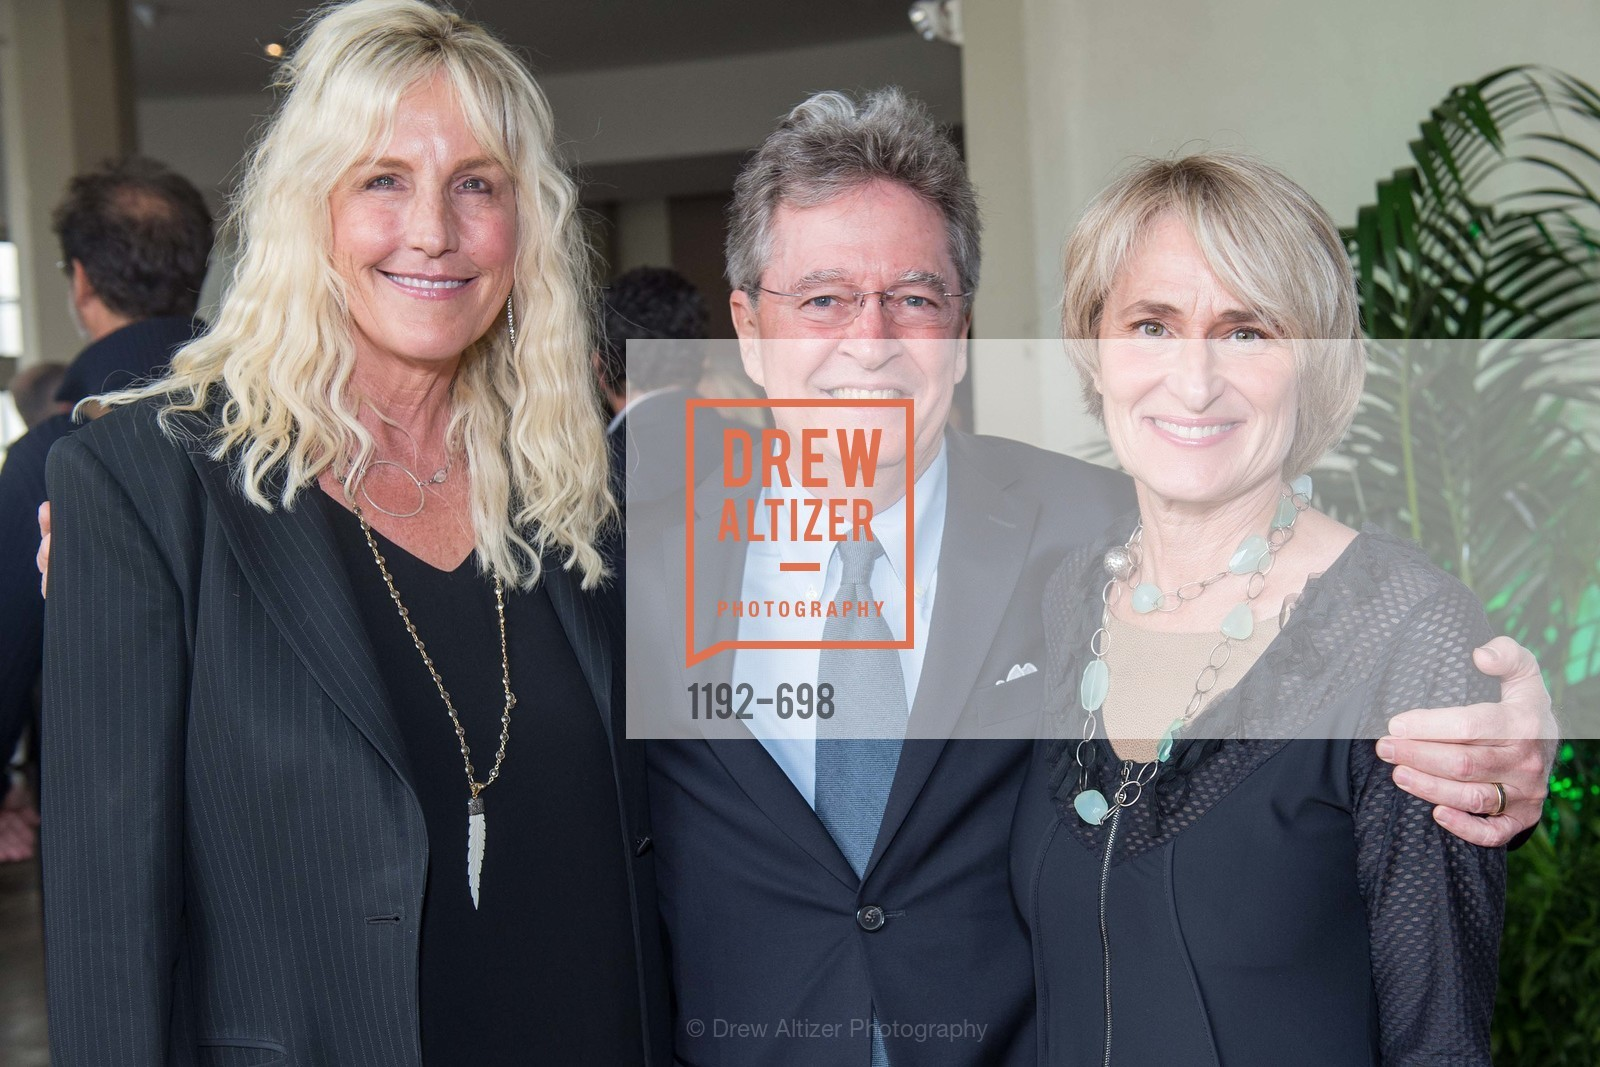 Erin Brockovich, Ken Cook, Deb Callahan, EWG's 6th Annual Earth Dinner, US, May 5th, 2015,Drew Altizer, Drew Altizer Photography, full-service agency, private events, San Francisco photographer, photographer california